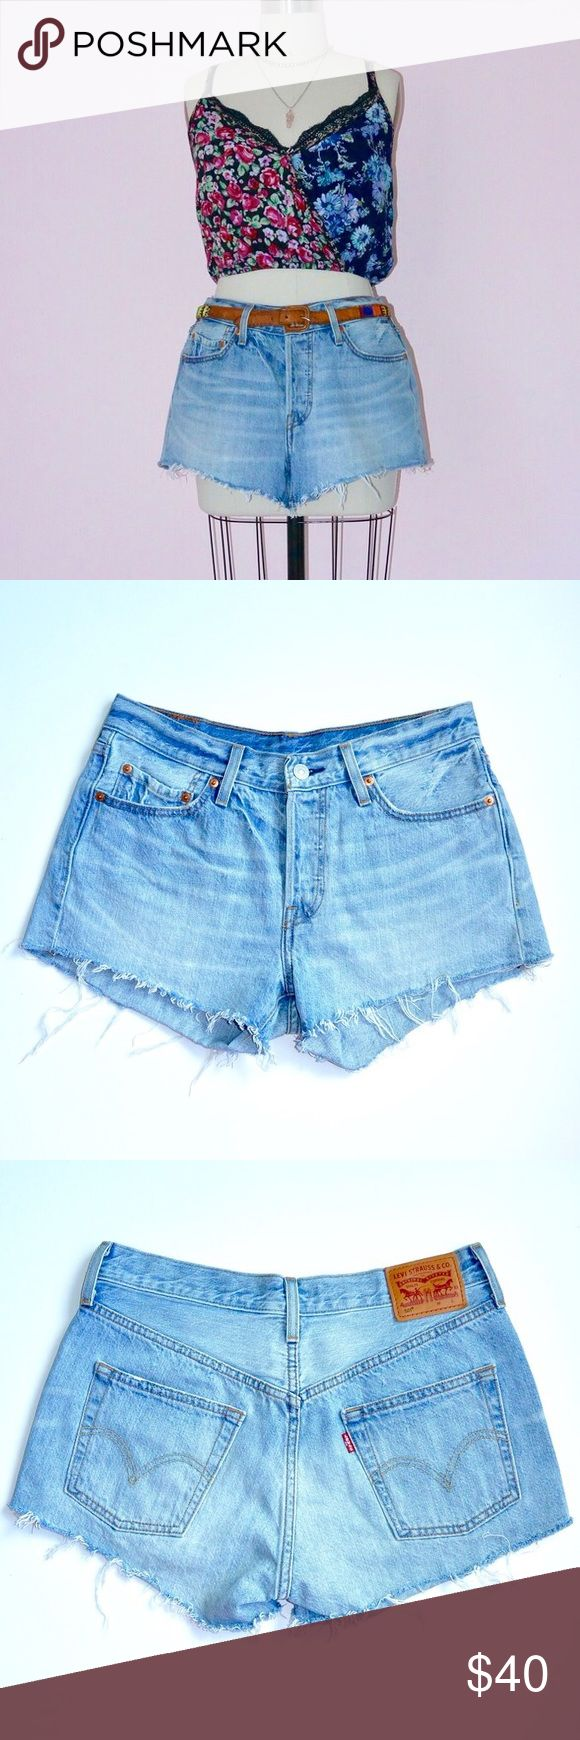 """New Levi's Blue Jean Shorts Lana Del Rey probably rocks these. You should too. Levi Strauss 501 blue jean shorts are the epitome of classic California cool. Features 5 pocket styling, mid-rise fit, and iconic Levi's patch detail.  Brand: Levi Strauss & Co. Size: 27* (*sizes are arbitrary! see measurements) Material: 100% cotton Measurement around top edge: 30"""" Measurement around hip point: 38""""  Length along outer edge: 11"""" Length of rise (from top of button to crotch): 9.5"""" Levi's Shorts…"""